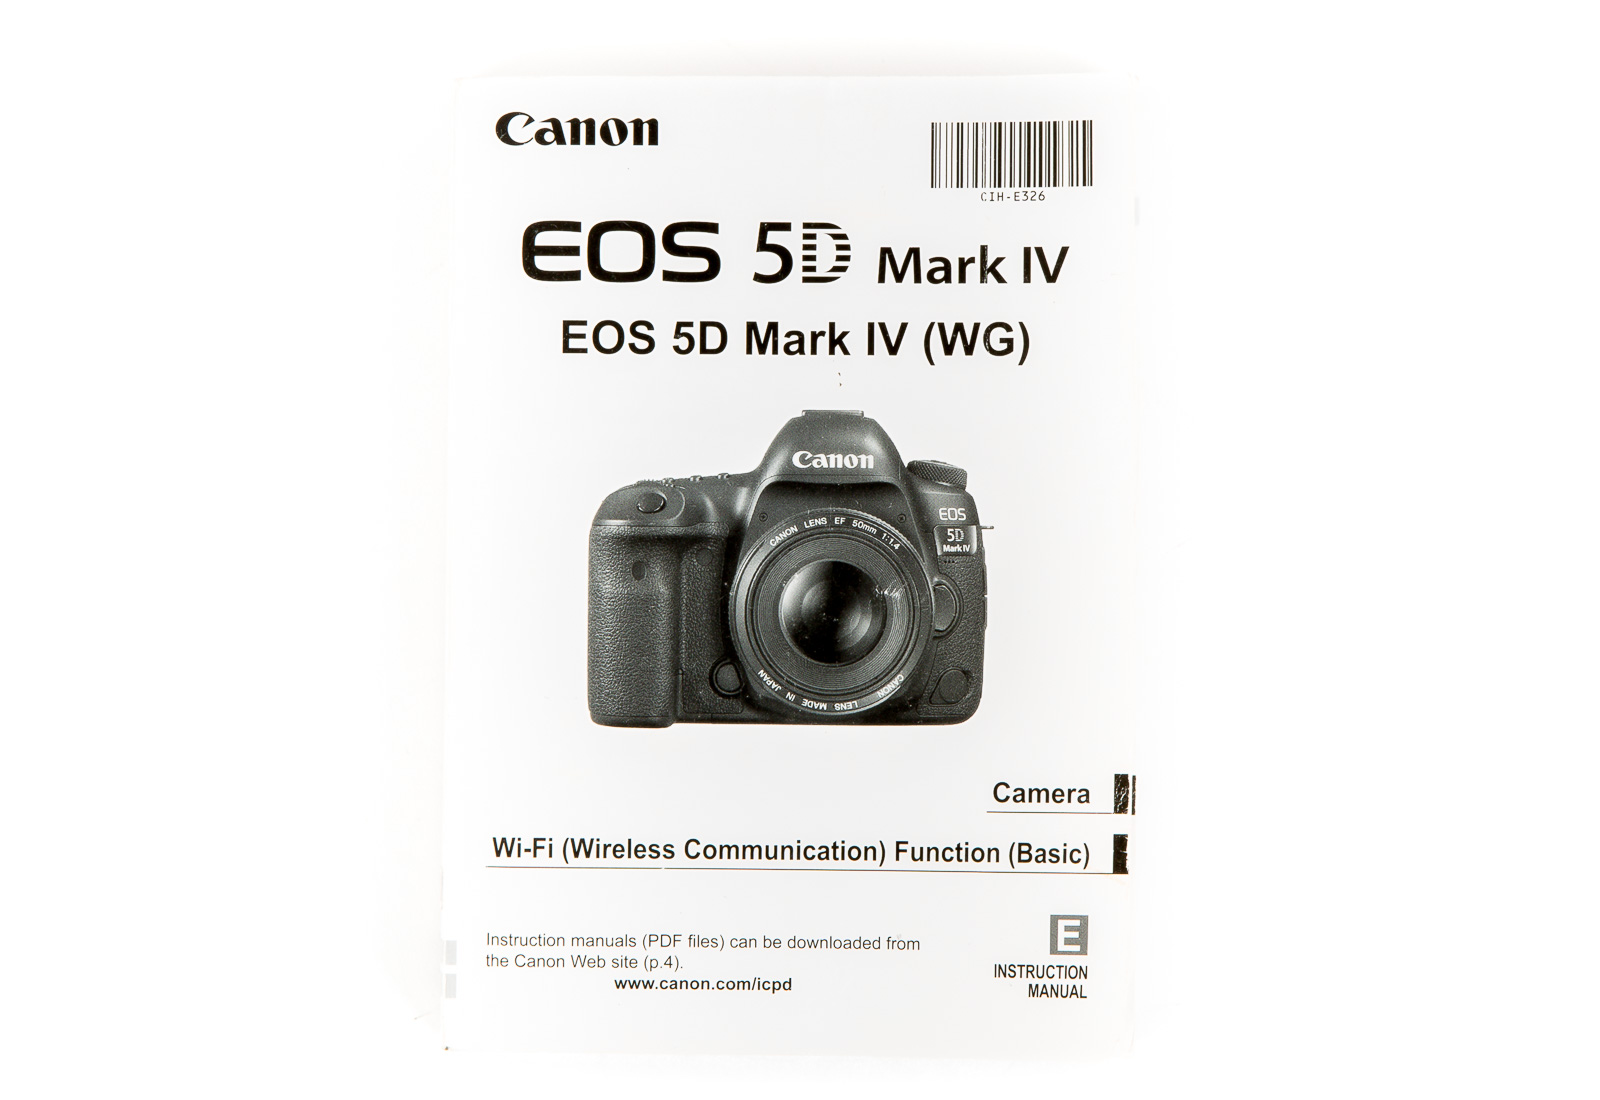 Rent a Canon 5D Mark IV at LensProToGo.com